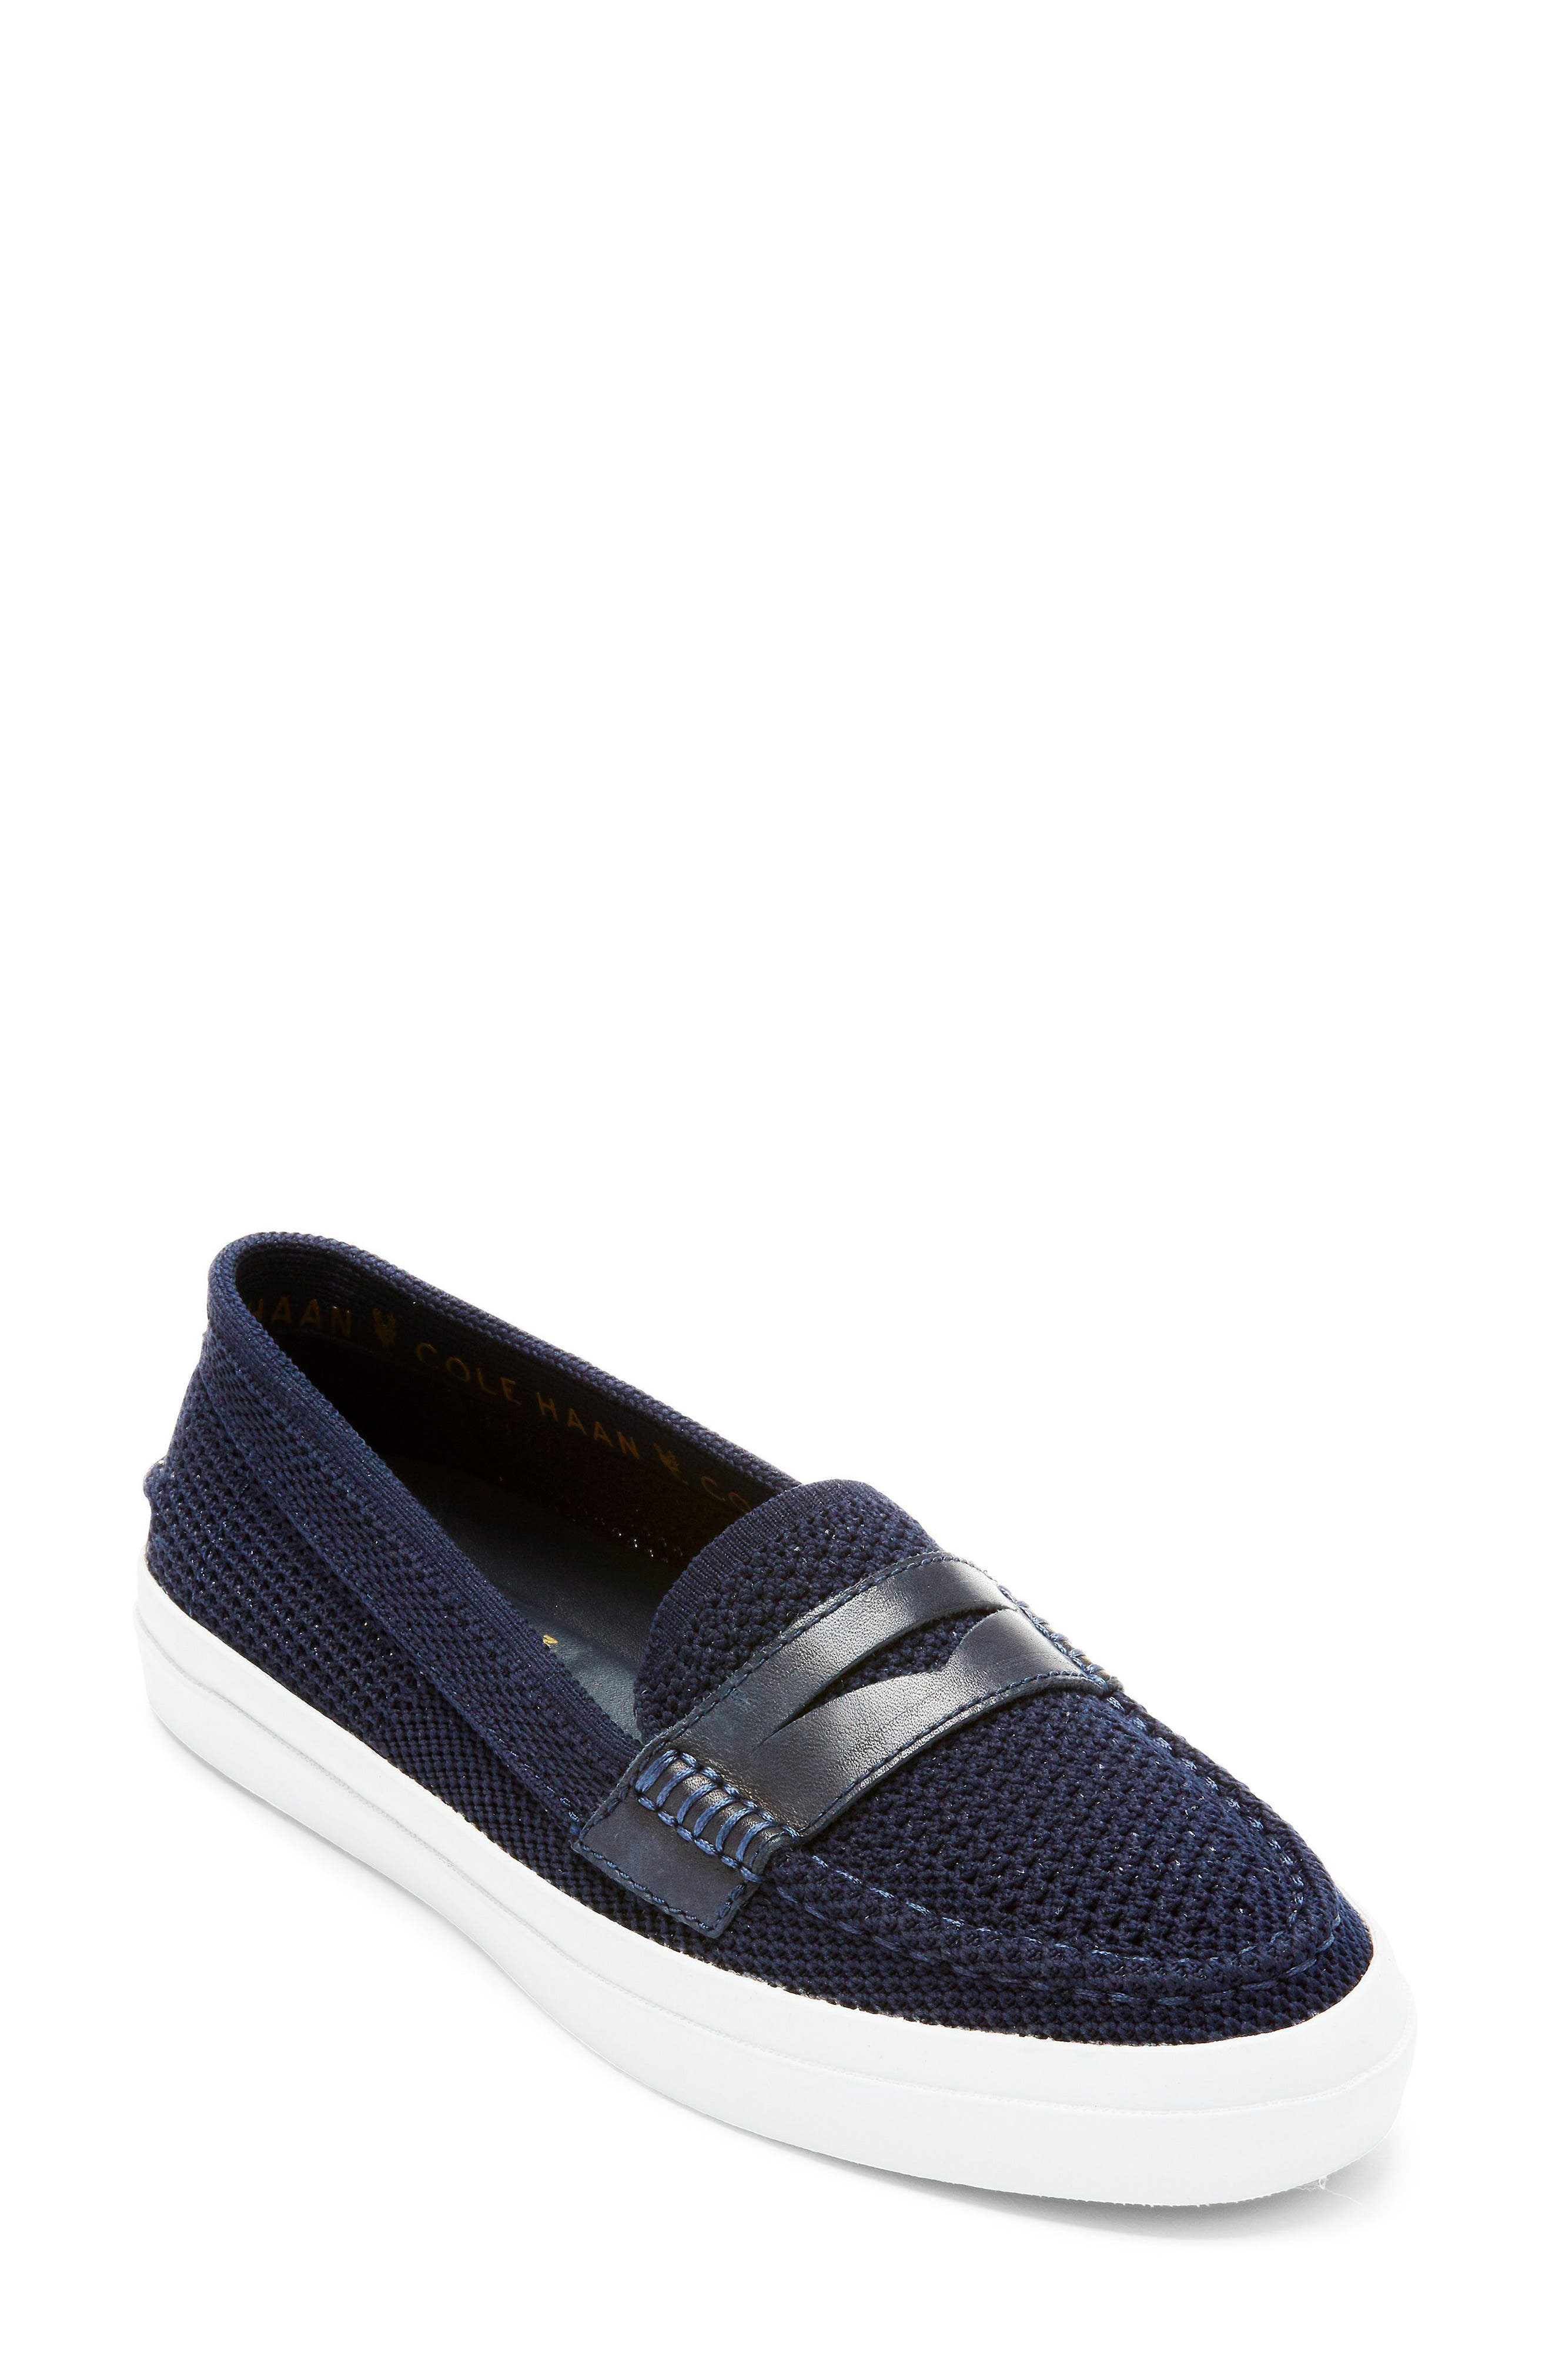 Pinch Stitchlite<sup>™</sup> Loafer,                         Main,                         color, 410